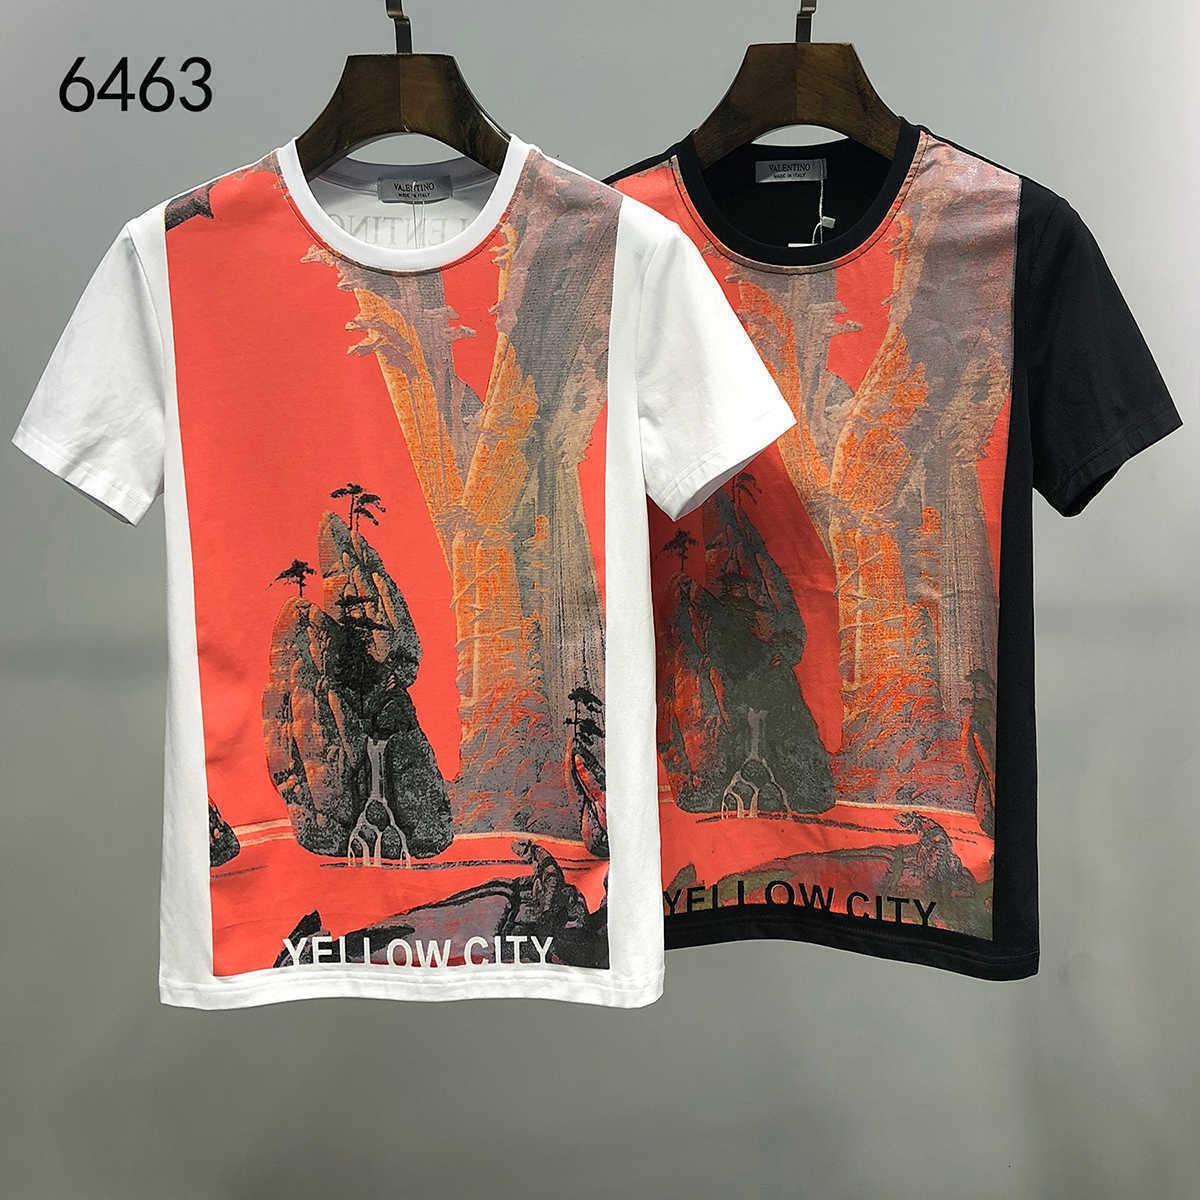 free shipping 2020 round neck mens t shirts casual T-shirt T-shirts 20191116-562po#9962*1_6463